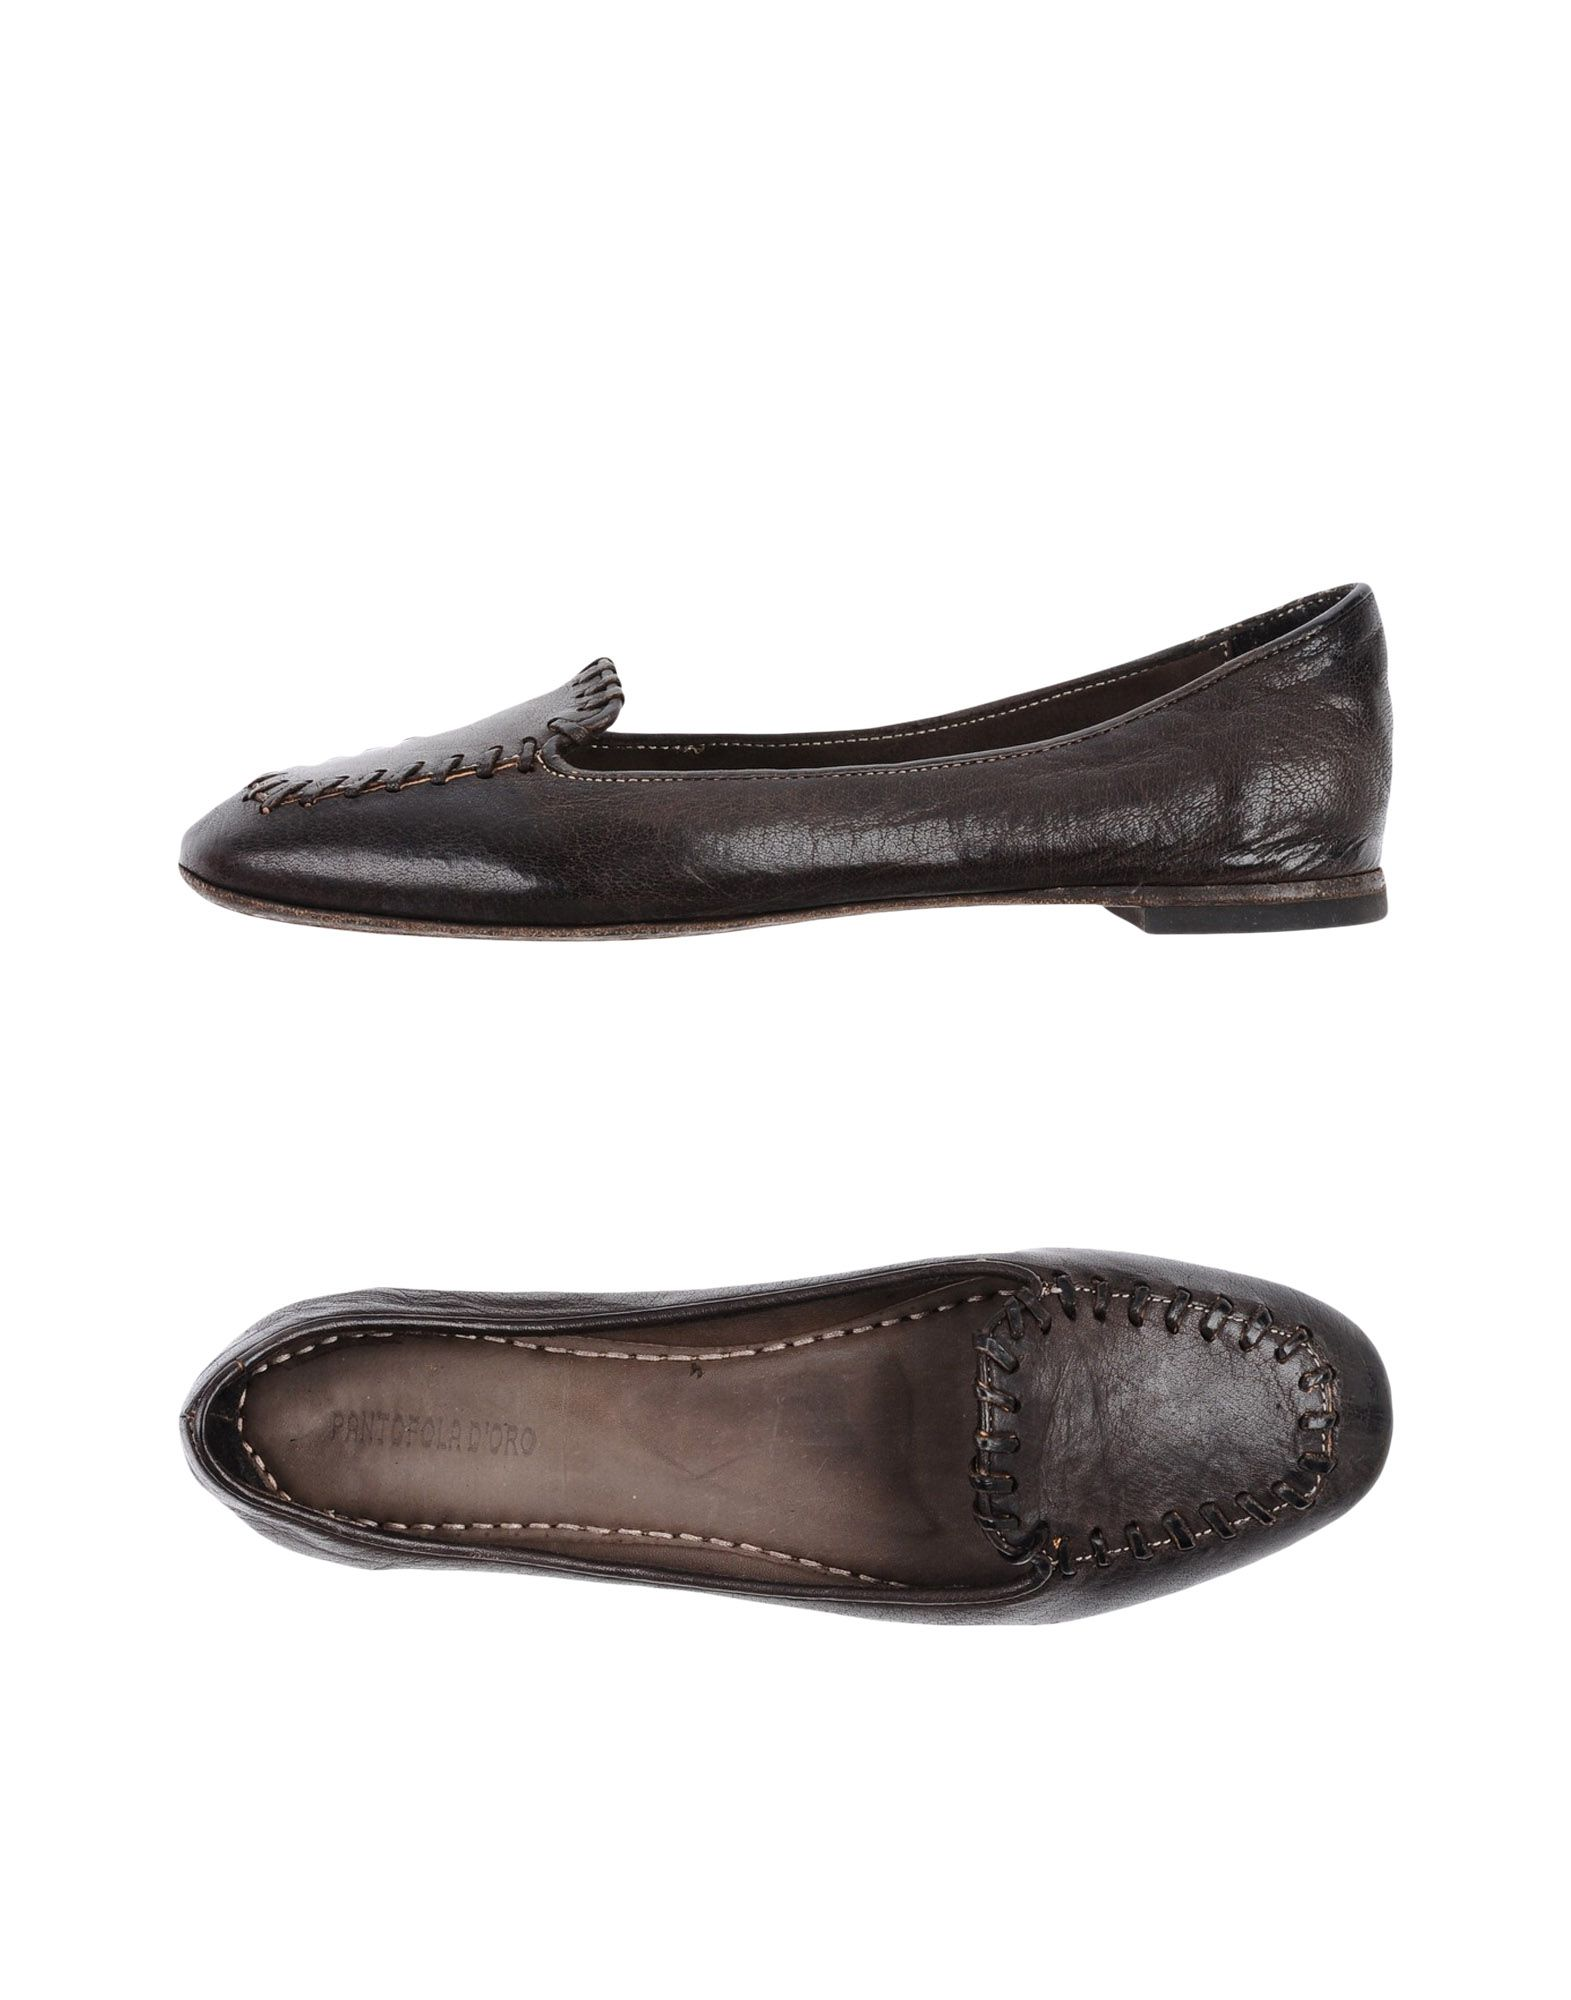 Pantofola D'oro Loafers - Women Pantofola D'oro Loafers online on 11339562TL  United Kingdom - 11339562TL on 020610